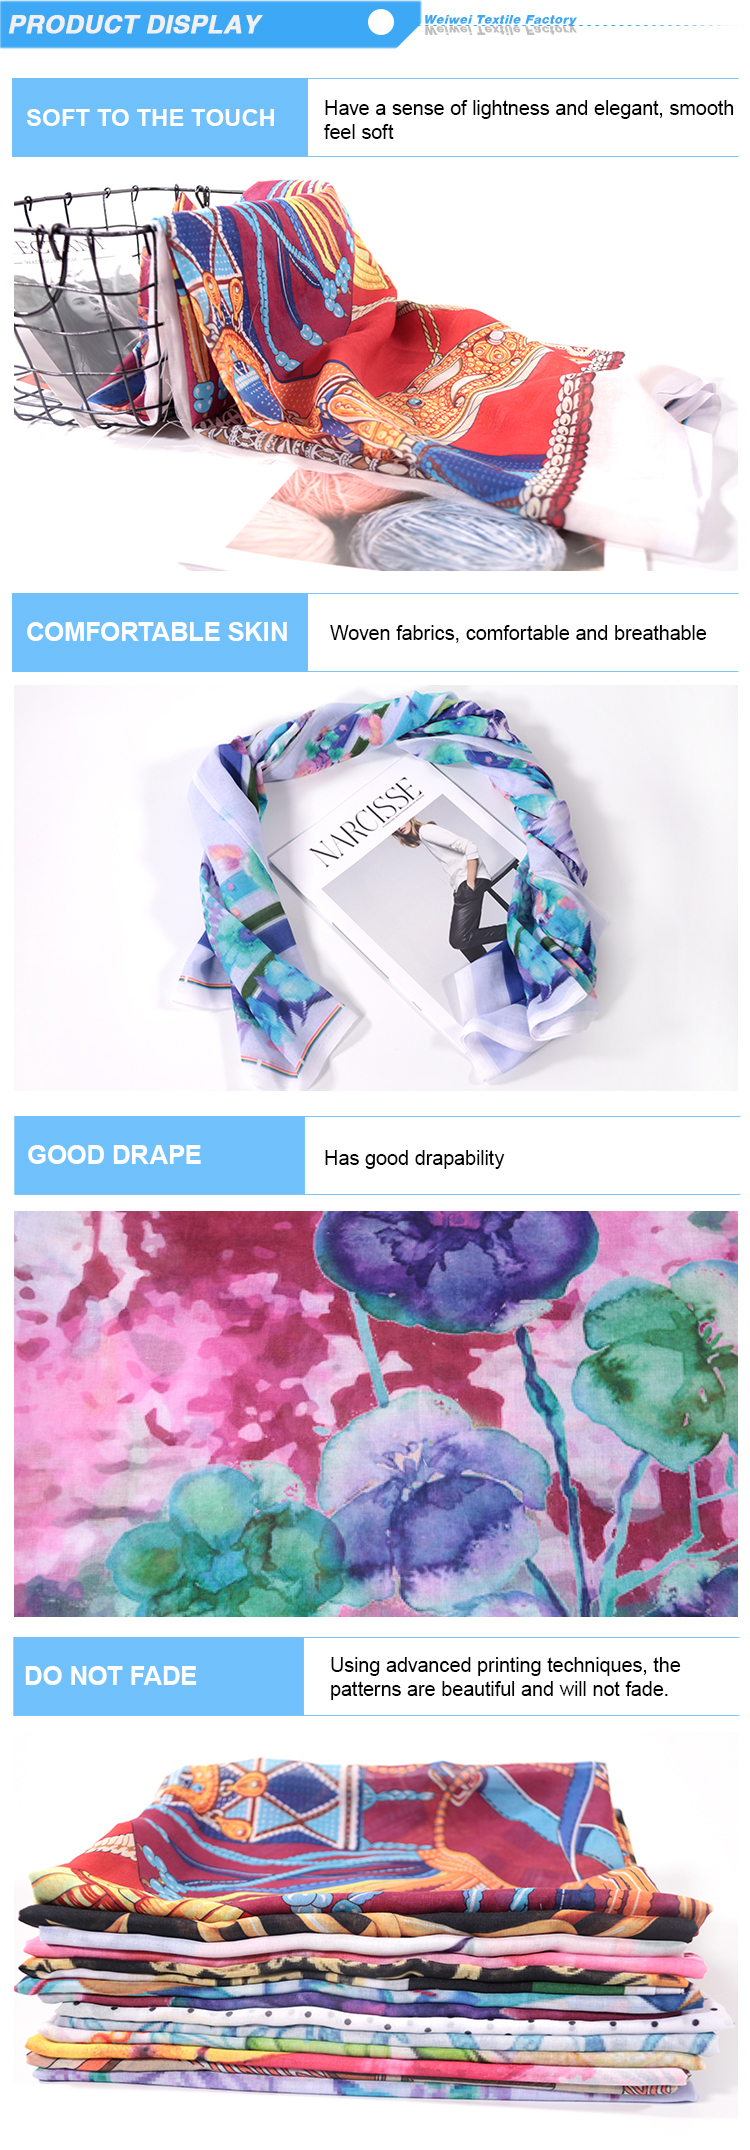 print service digital printed cotton voile scarf no moq